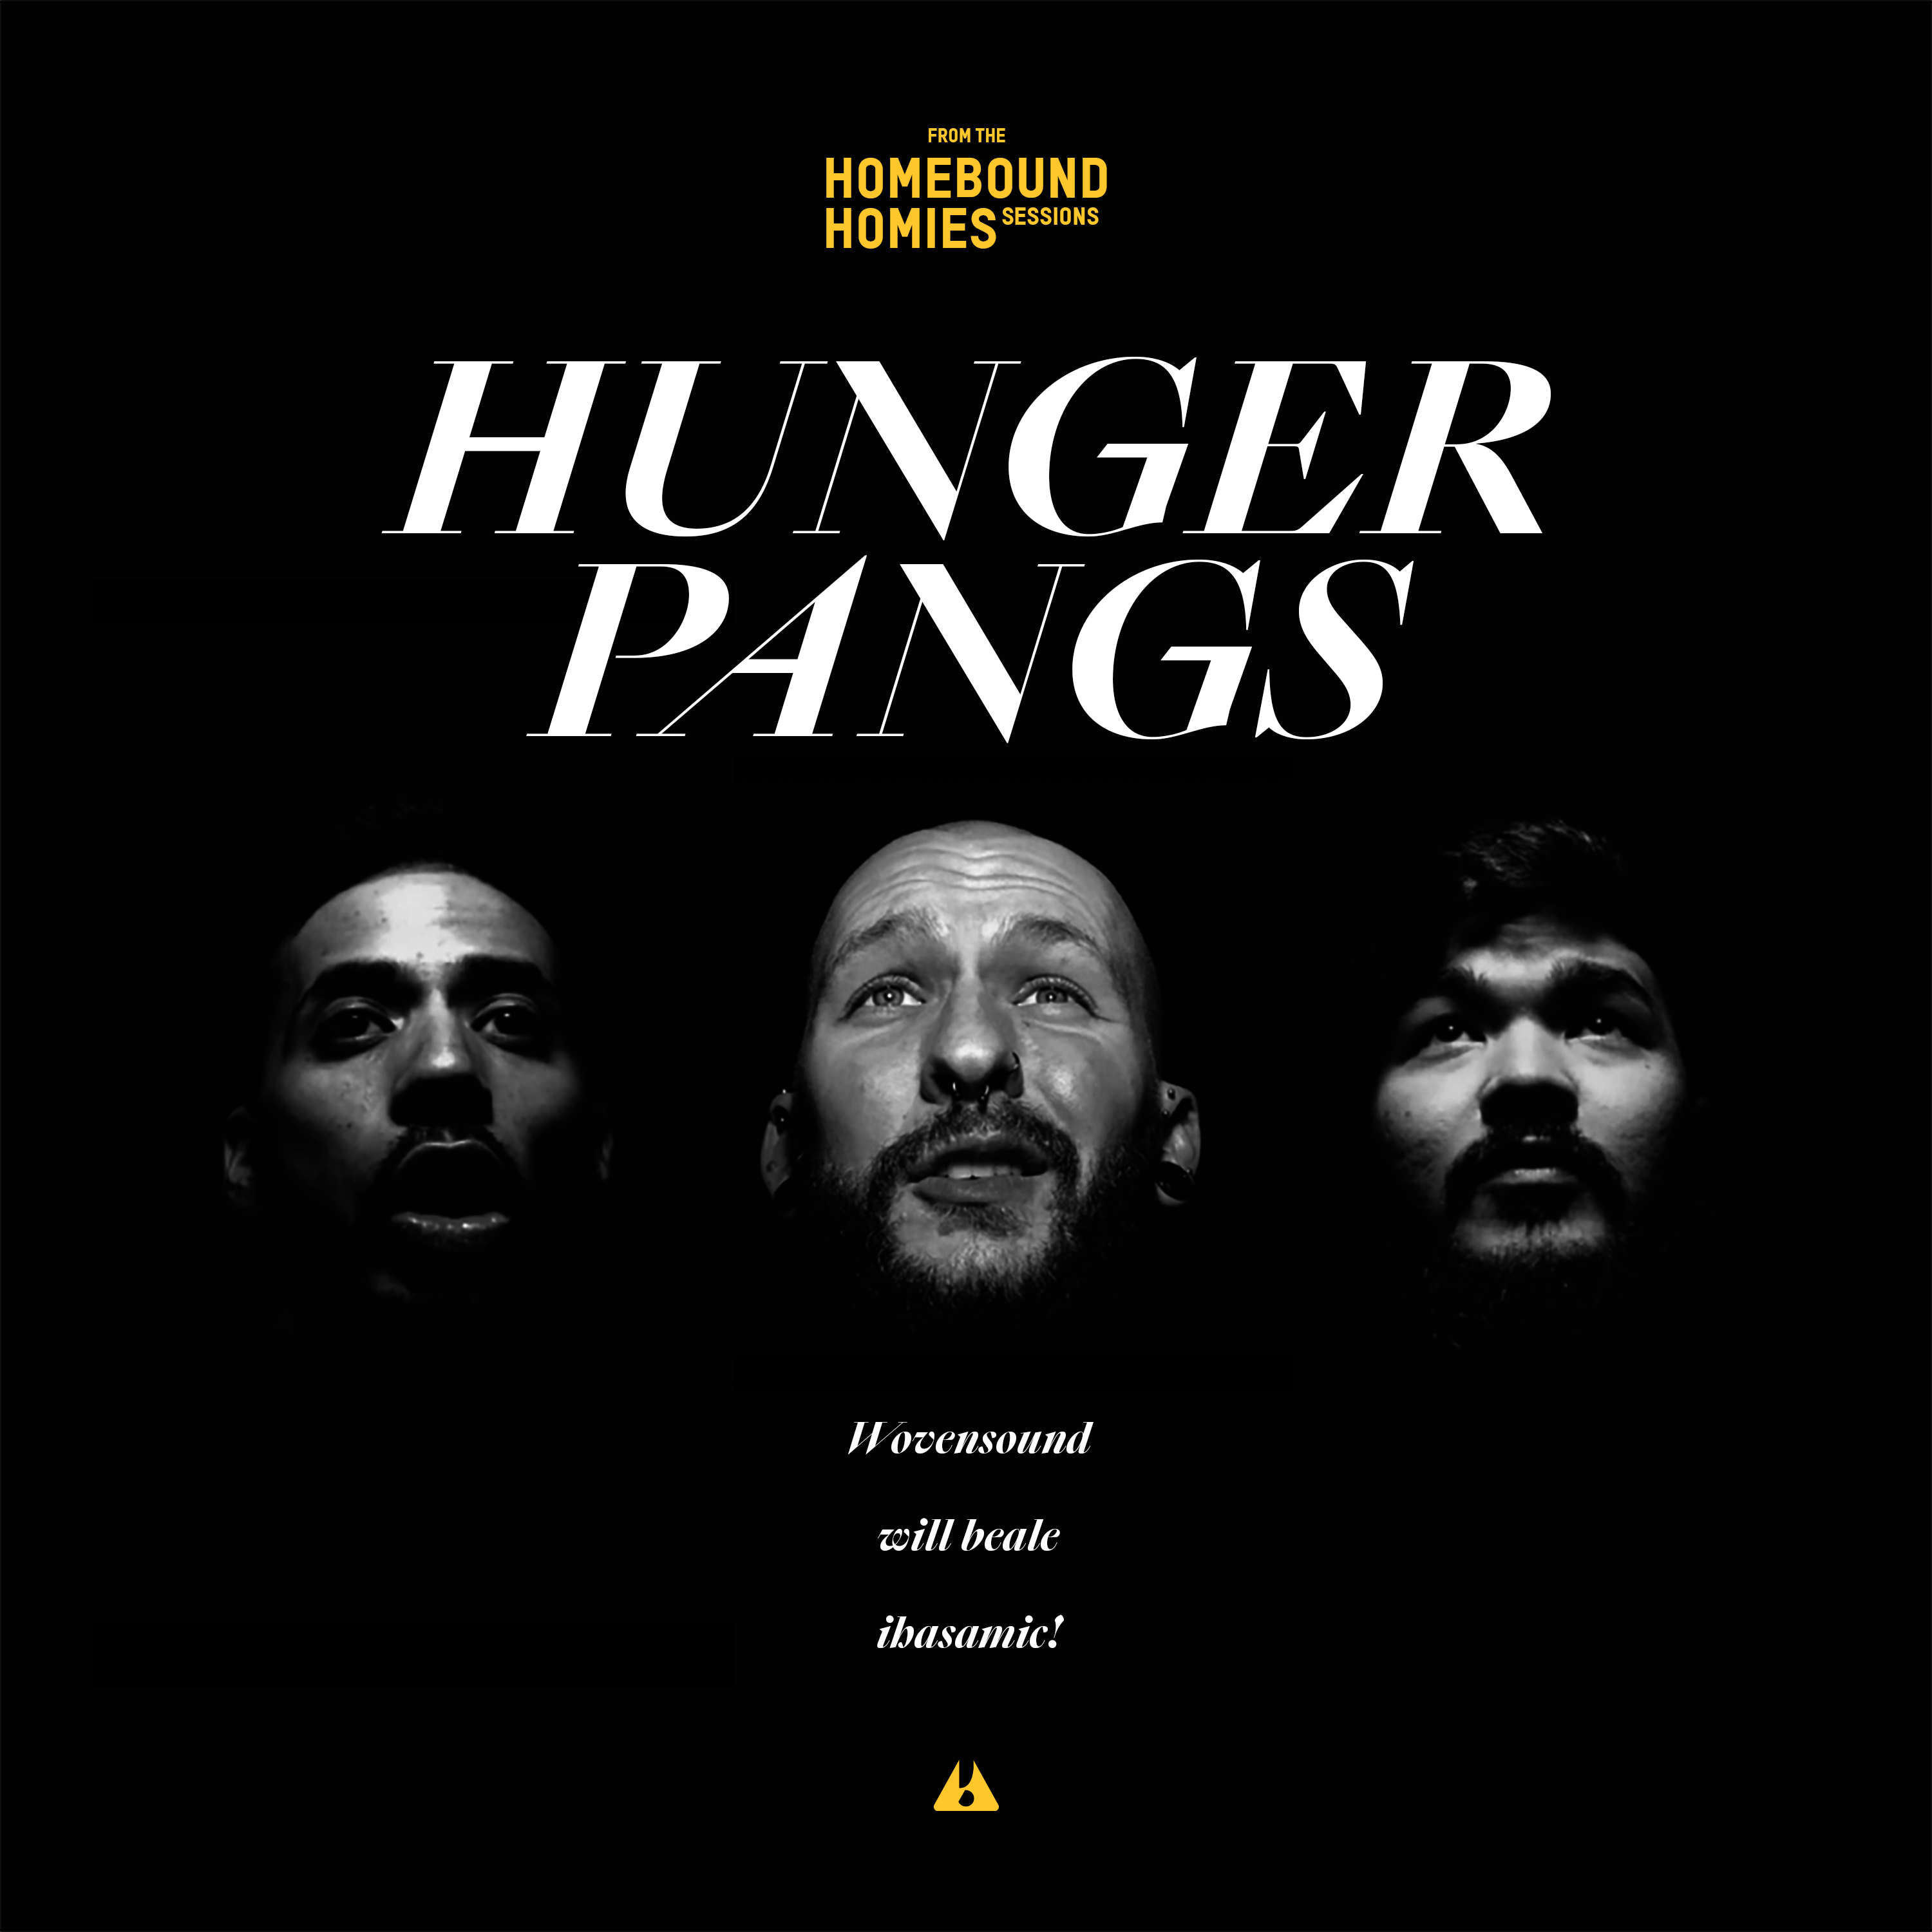 Hunger pangs album art 3kpx